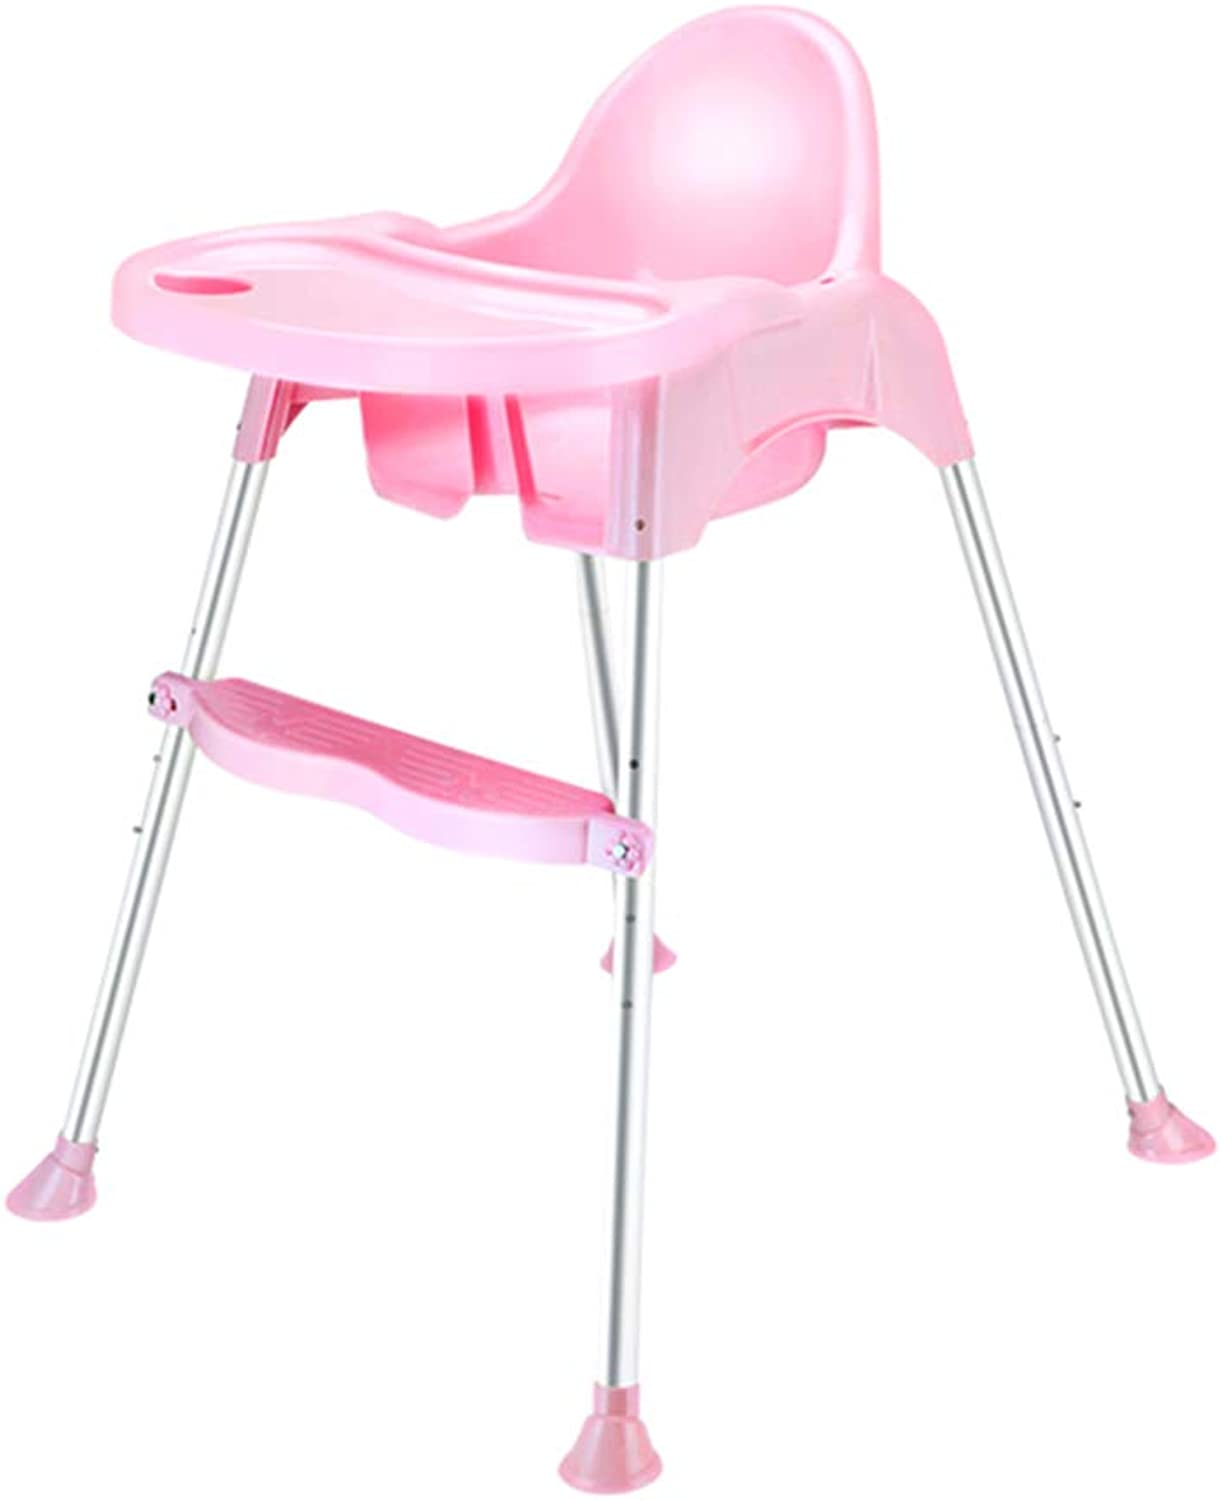 ZHAOYONGLI Baby Highchairs Dining Table Chairs Portable Coco Foldable Multi-Function Mini Seat Creative Solid Durable Long Lasting (color   Pink, Size   Short feet)